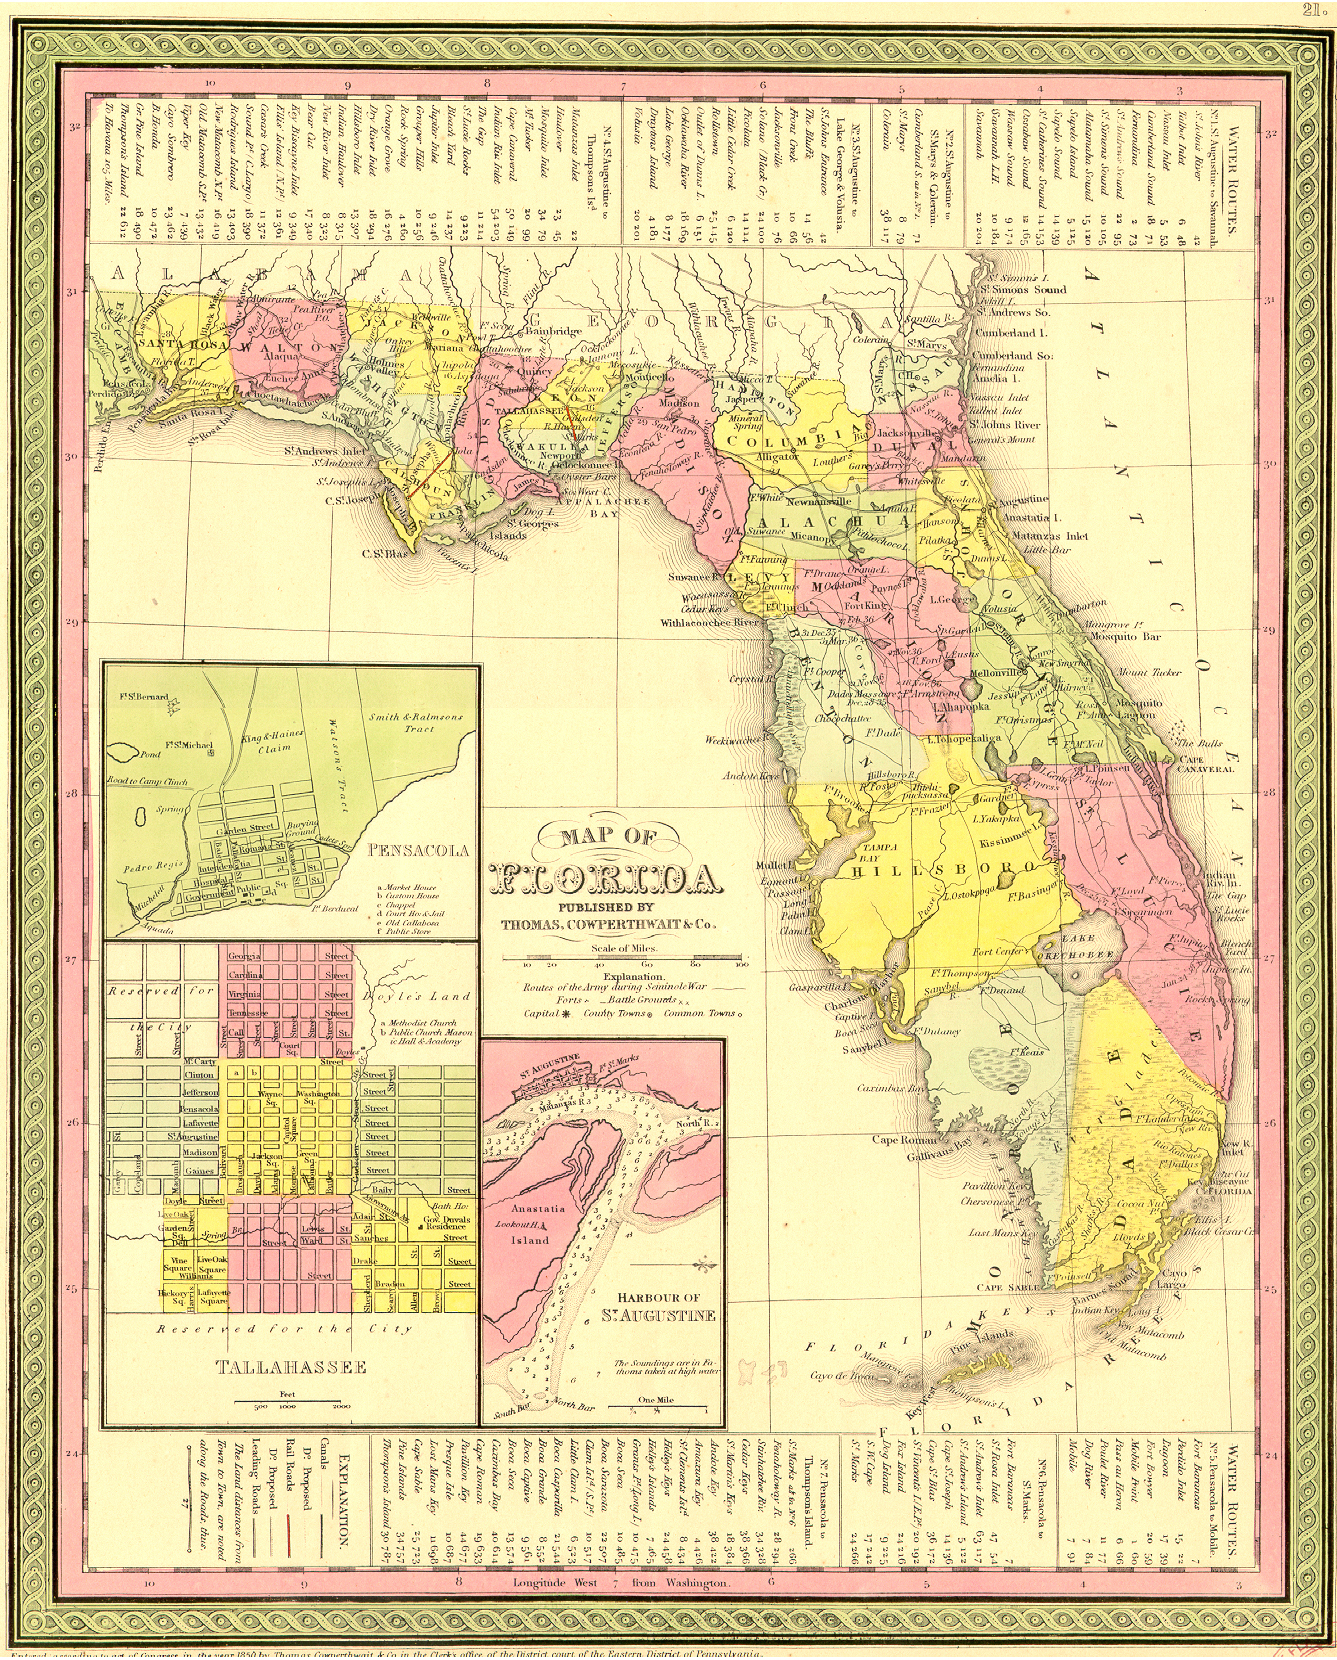 Old Maps Jacqui ThurlowLippisch - Florida map rivers